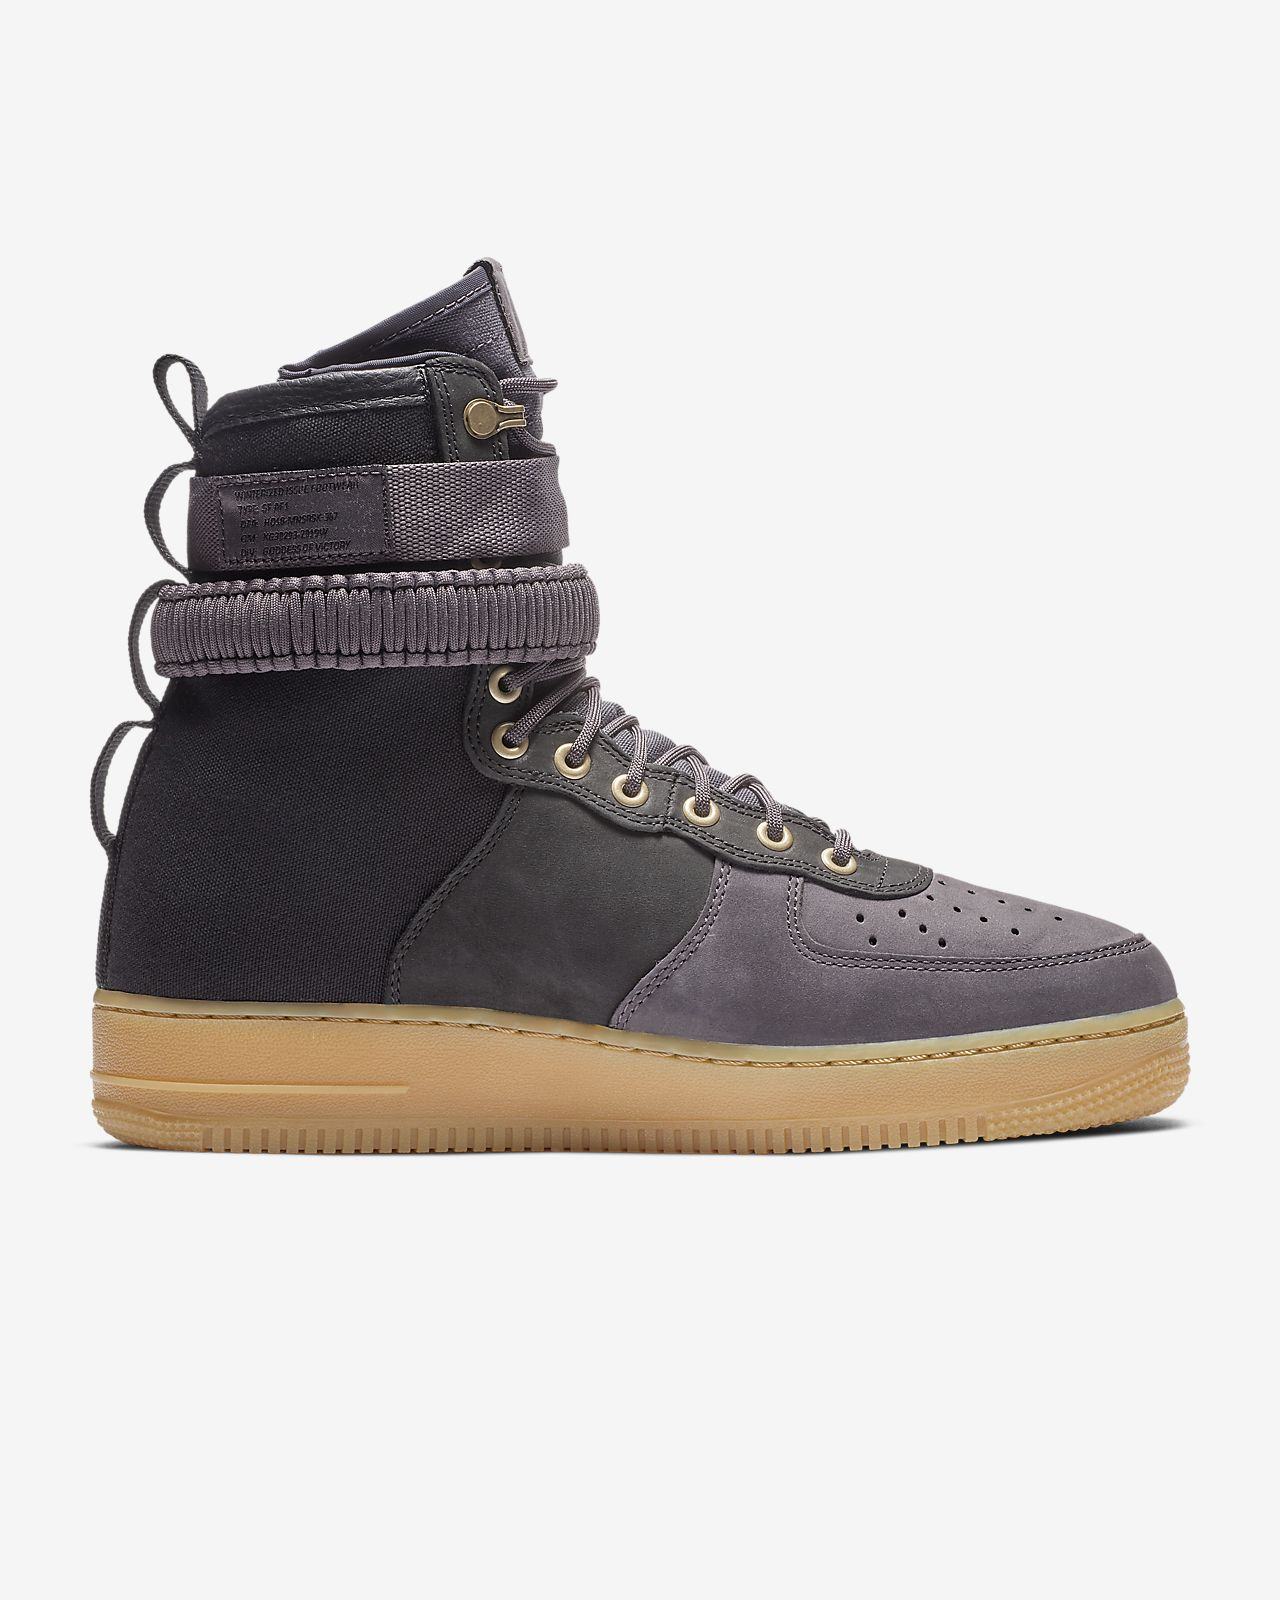 online store 49c7a c4613 ... Chaussure Nike SF Air Force 1 Premium pour Homme